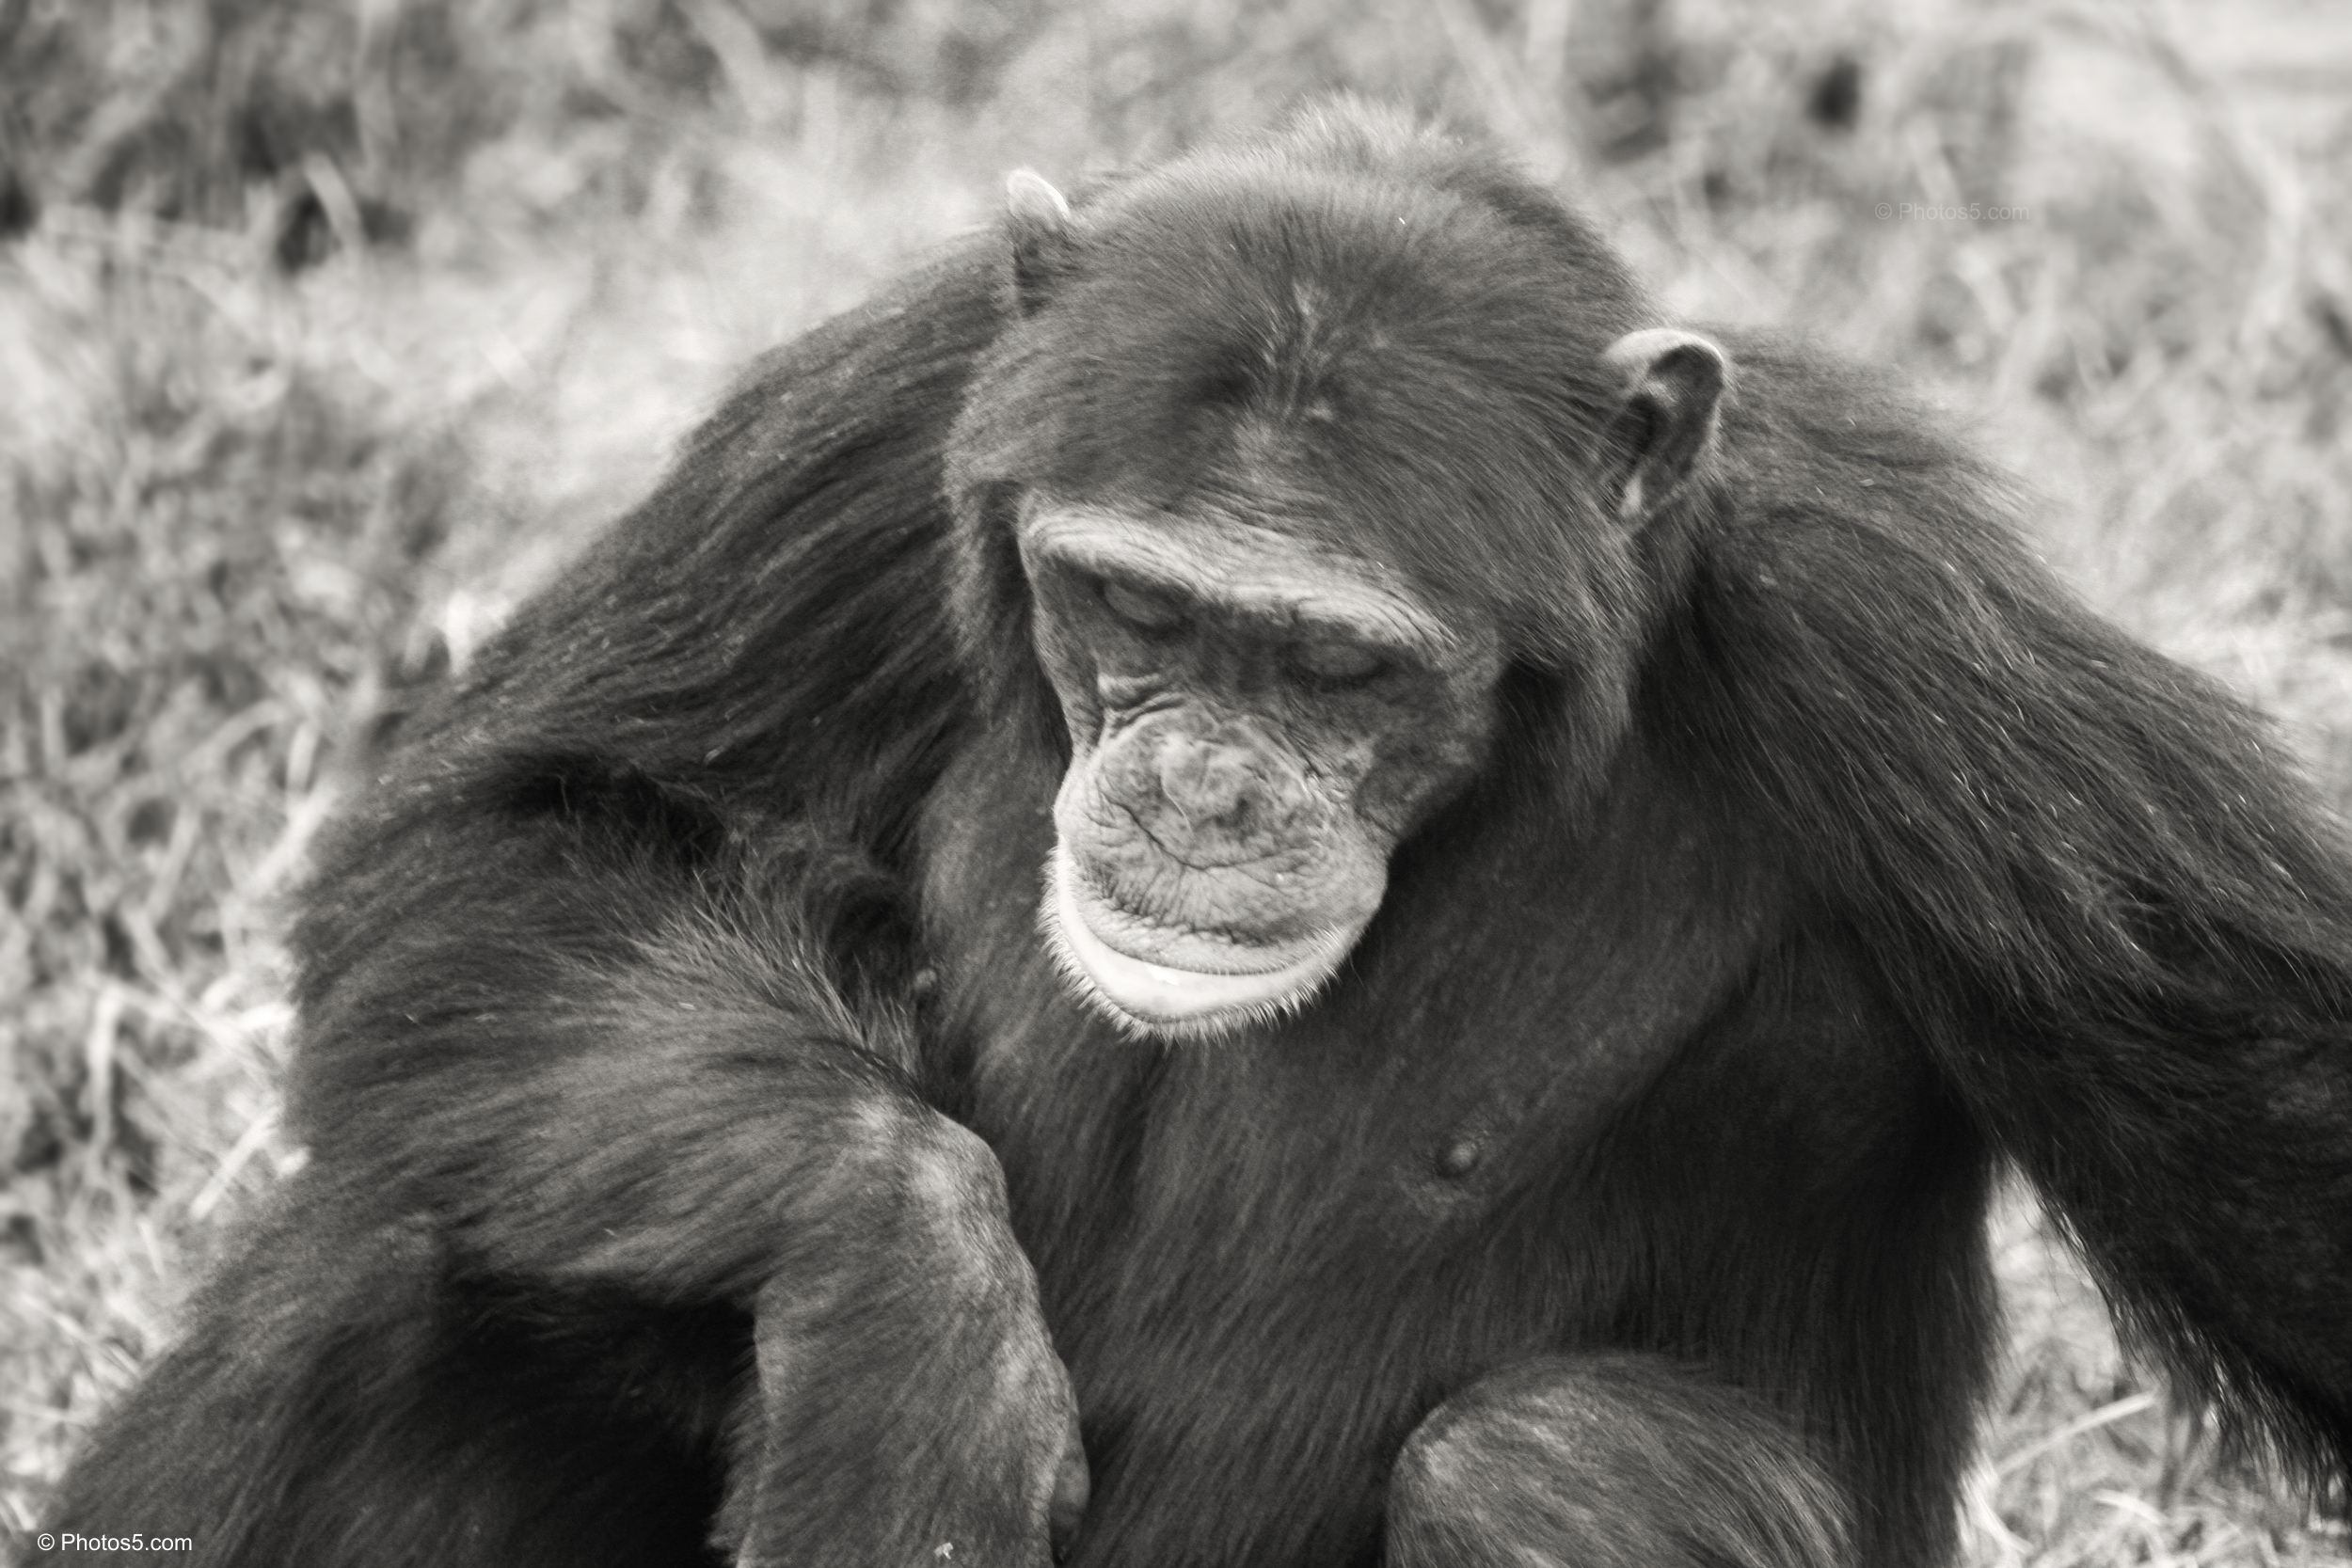 Chimpanzee with Head Down in Black and White – Photos5.com